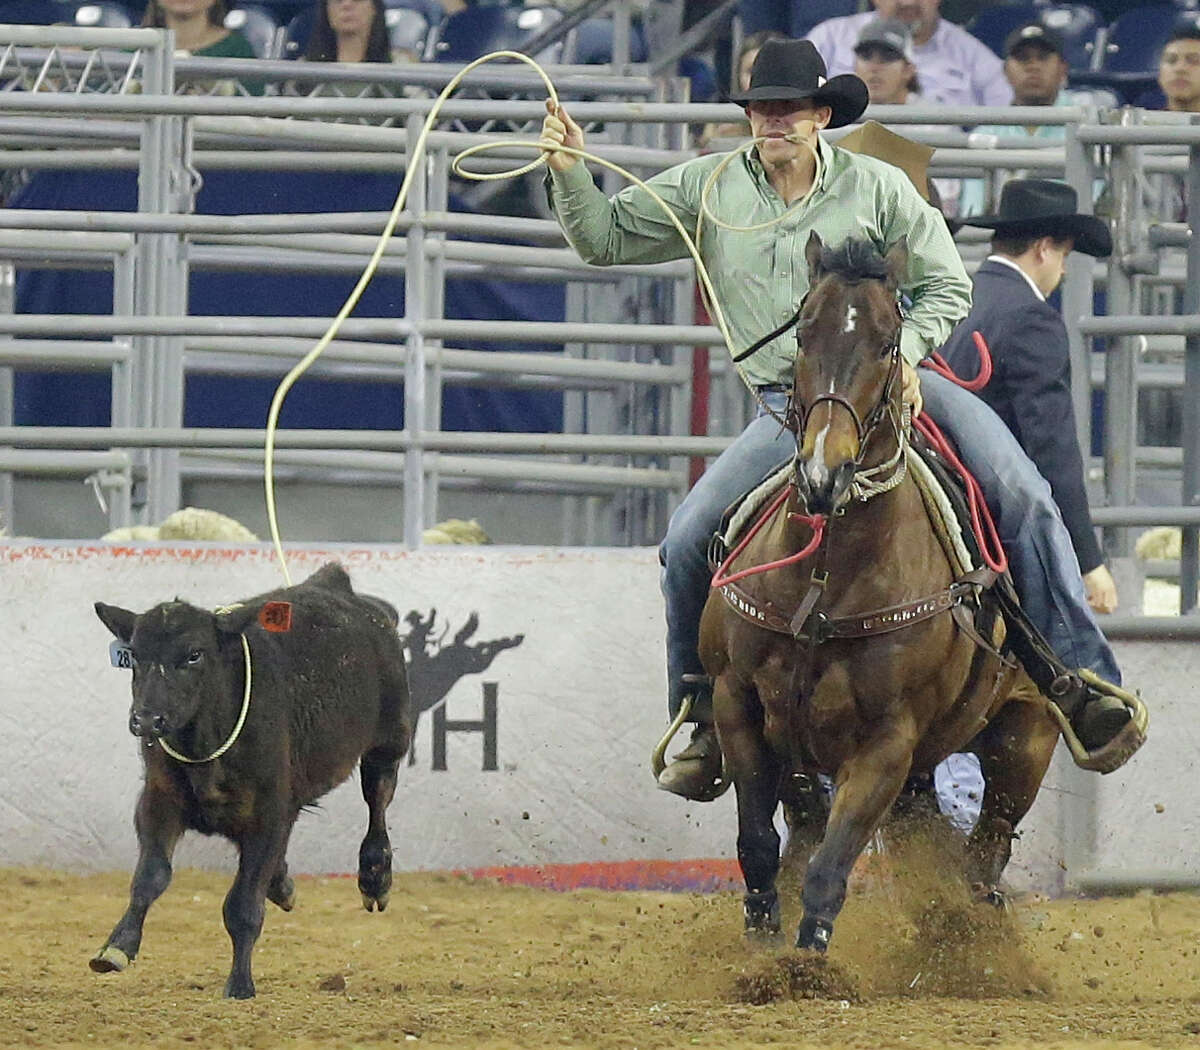 Ryle Smith of Oakdale, CA competes in tie-down roping at RodeoHouston during the Houston Livestock Show and Rodeo in NRG Stadium Thursday, March 17, 2016, in Houston.